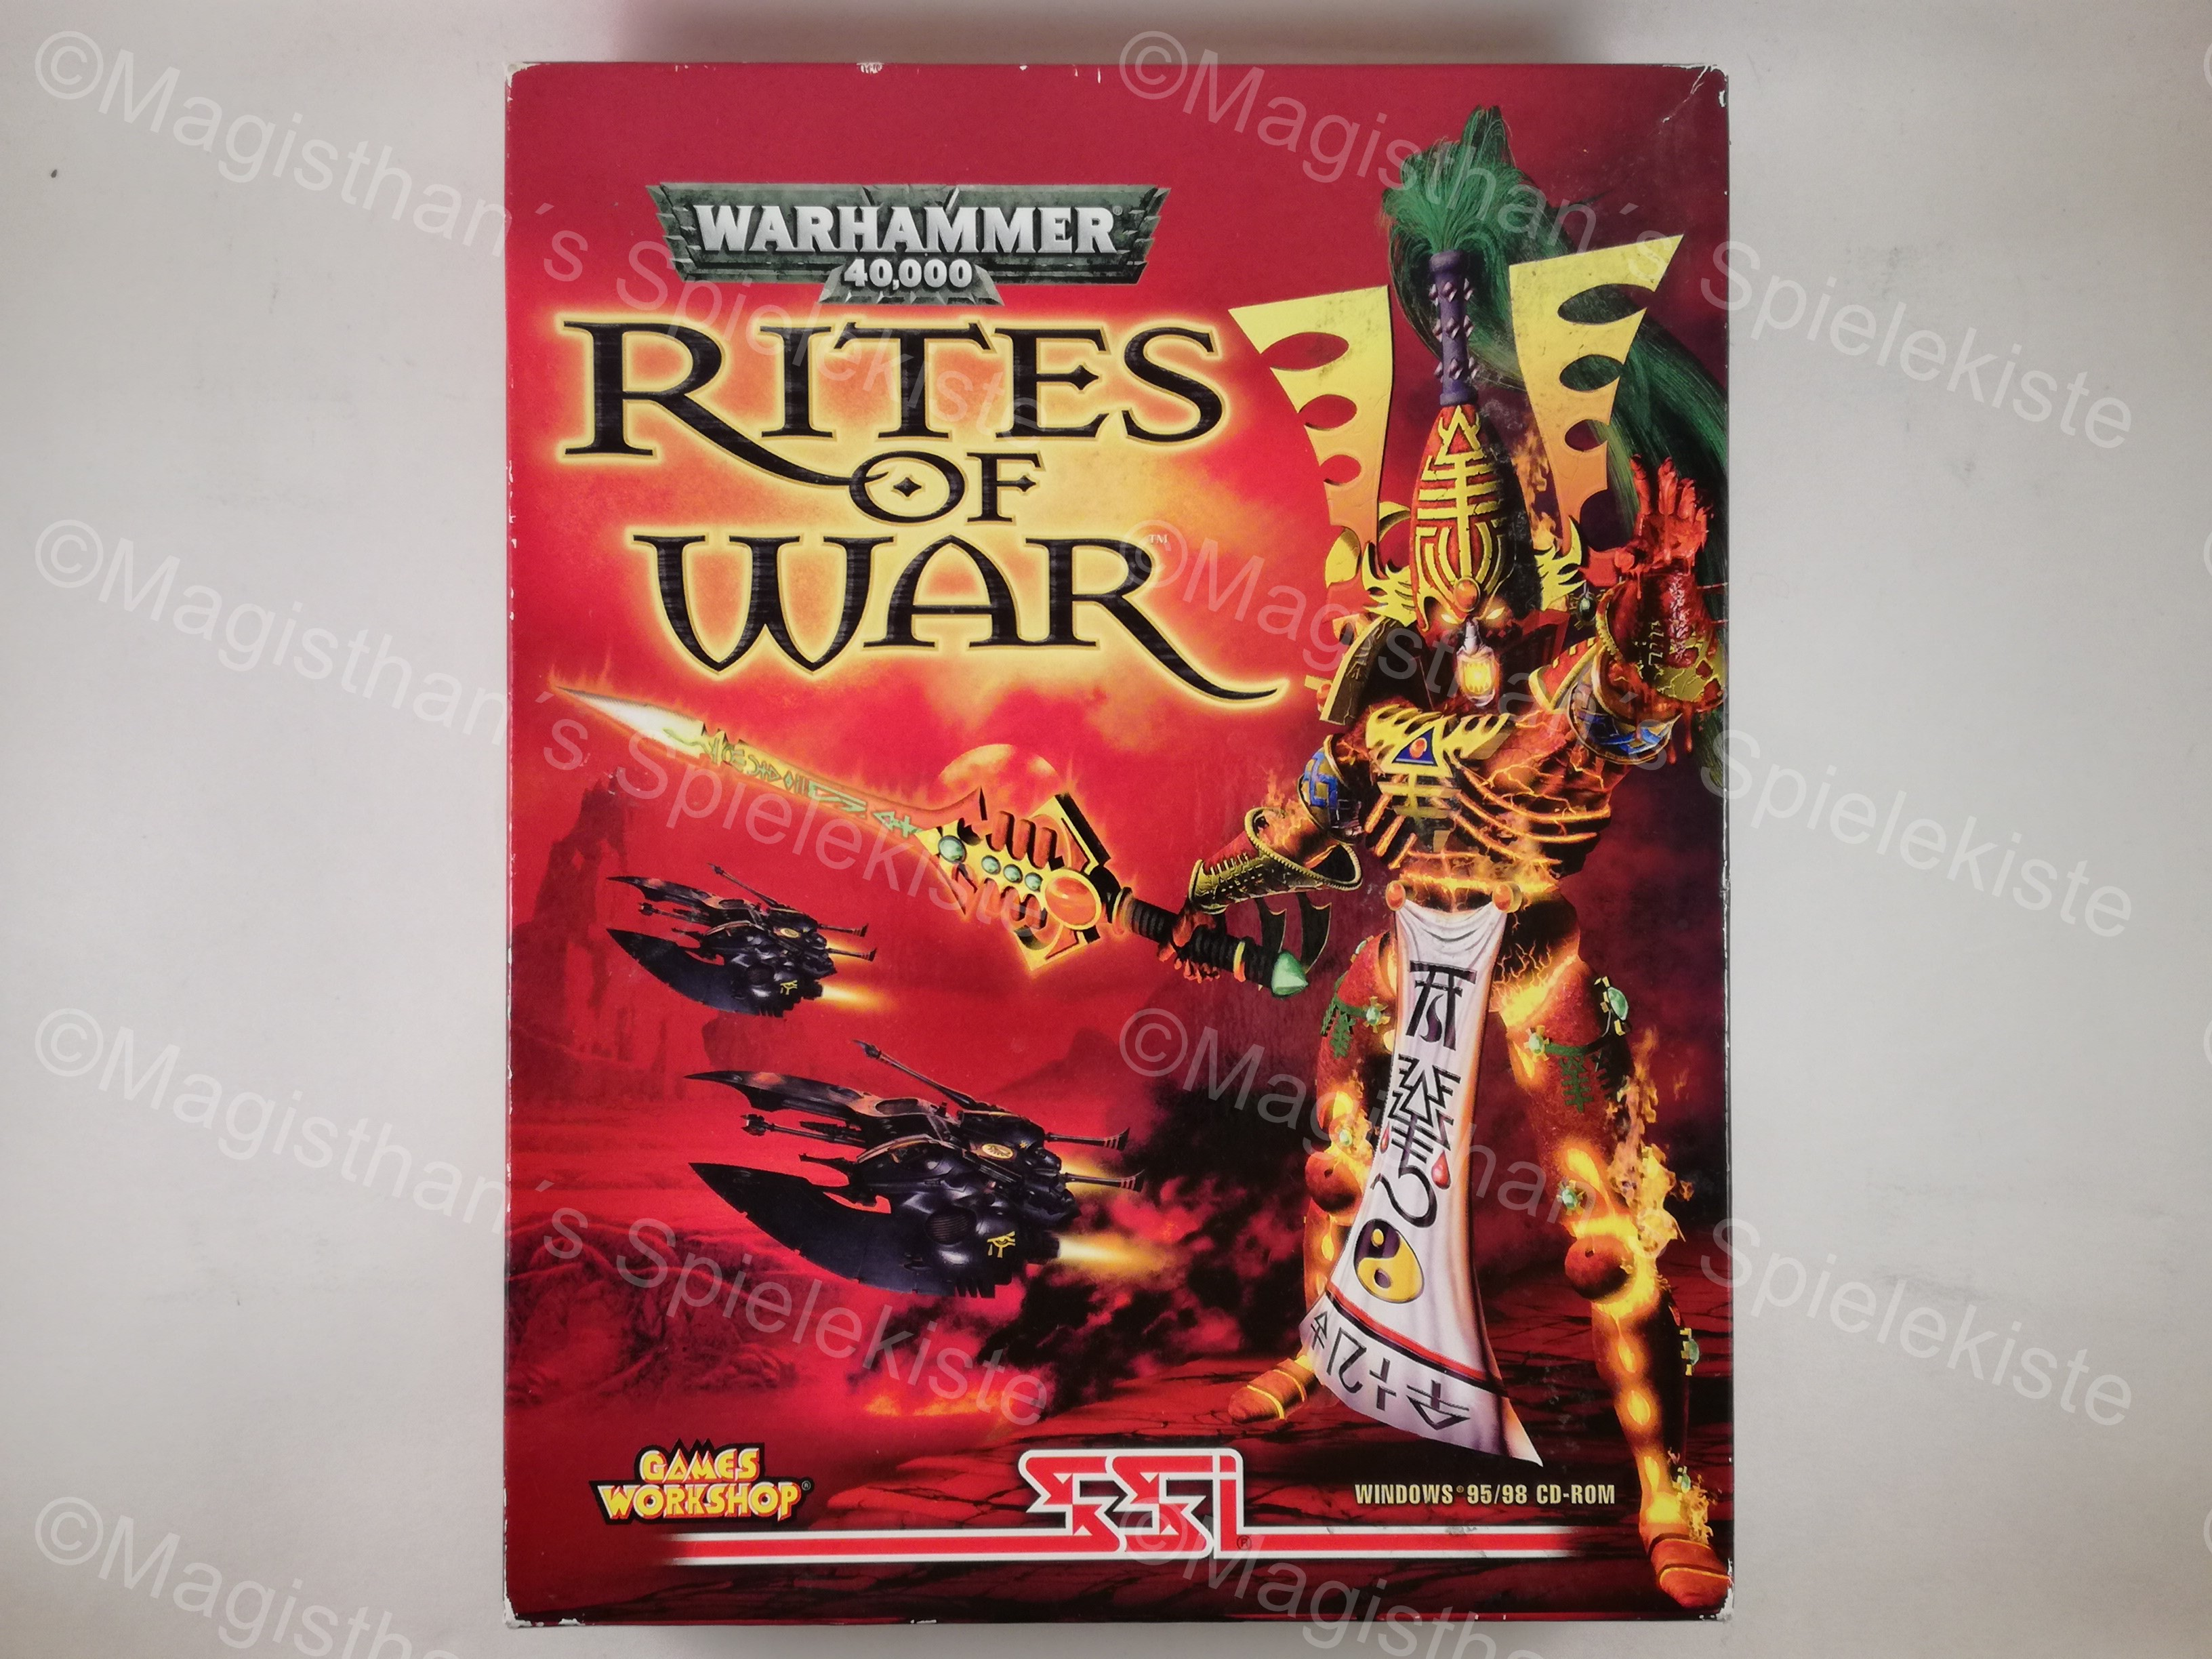 Warhammer_Rites_of_War1.jpg